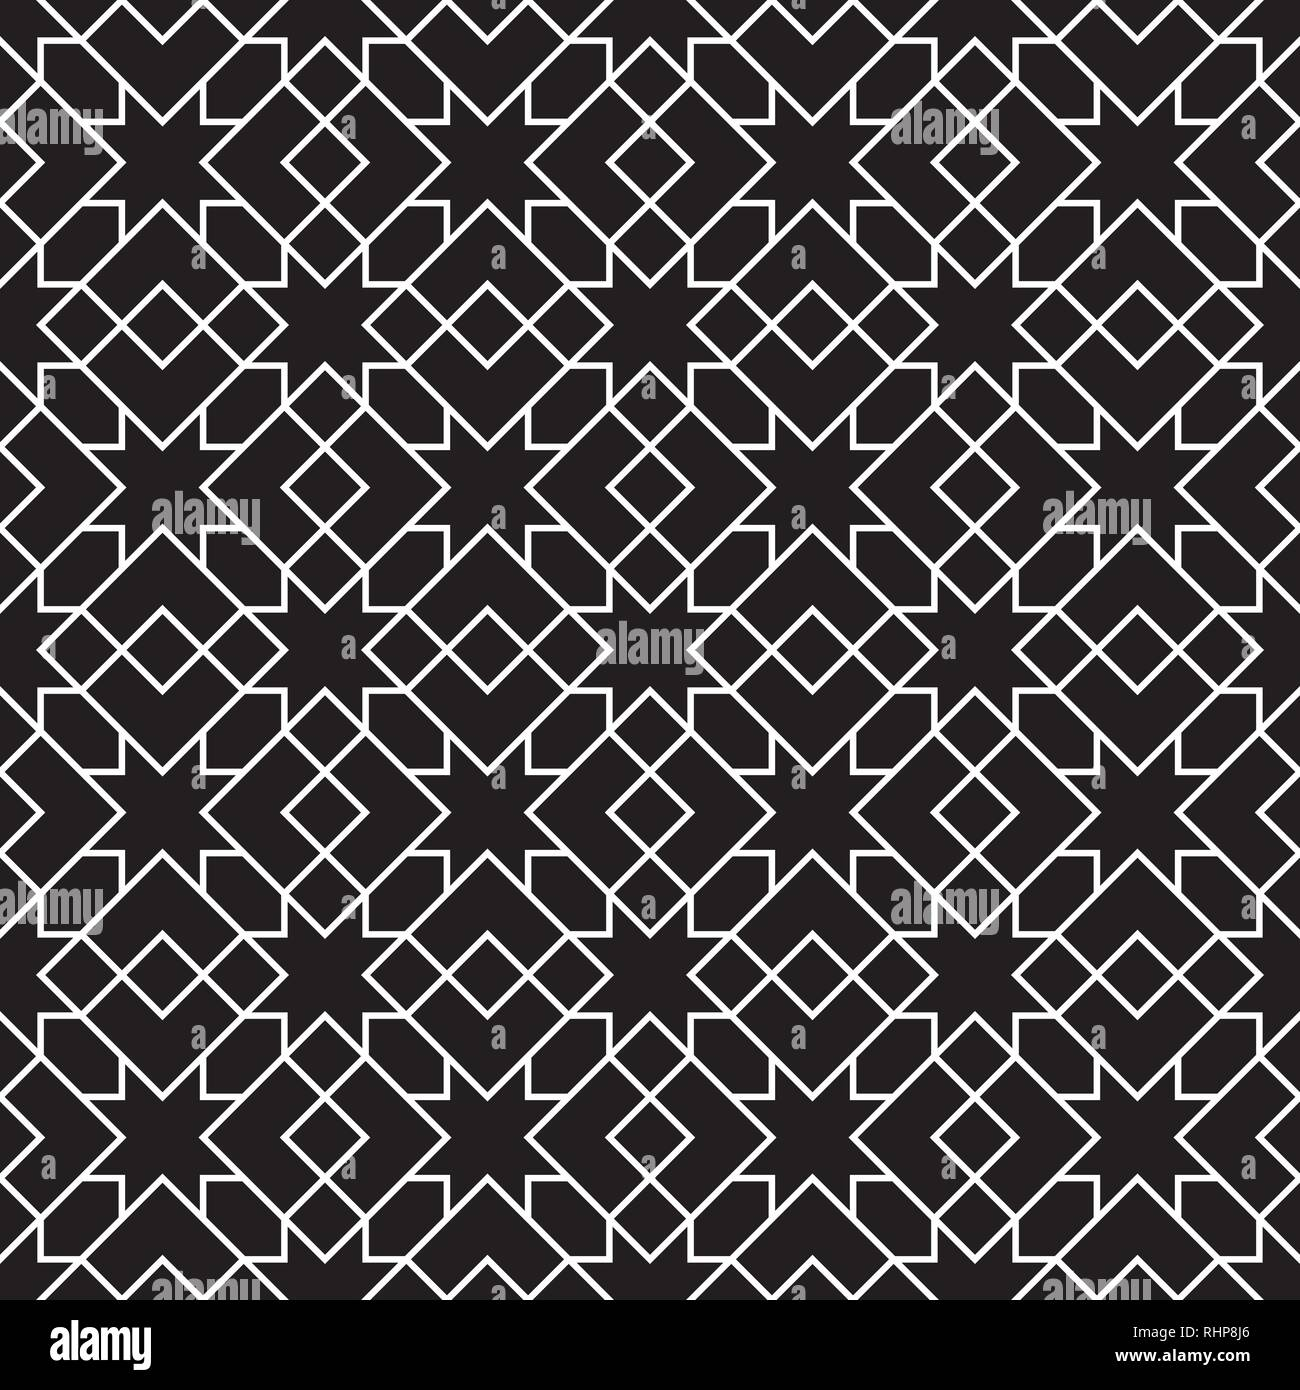 Seamless Geometric Pattern Black And White Vector Illustration Abstract Texture Graphic Design Background Stock Vector Image Art Alamy,Pid Controller Design Tuning Parameters And Simulation For 4th Order Plant